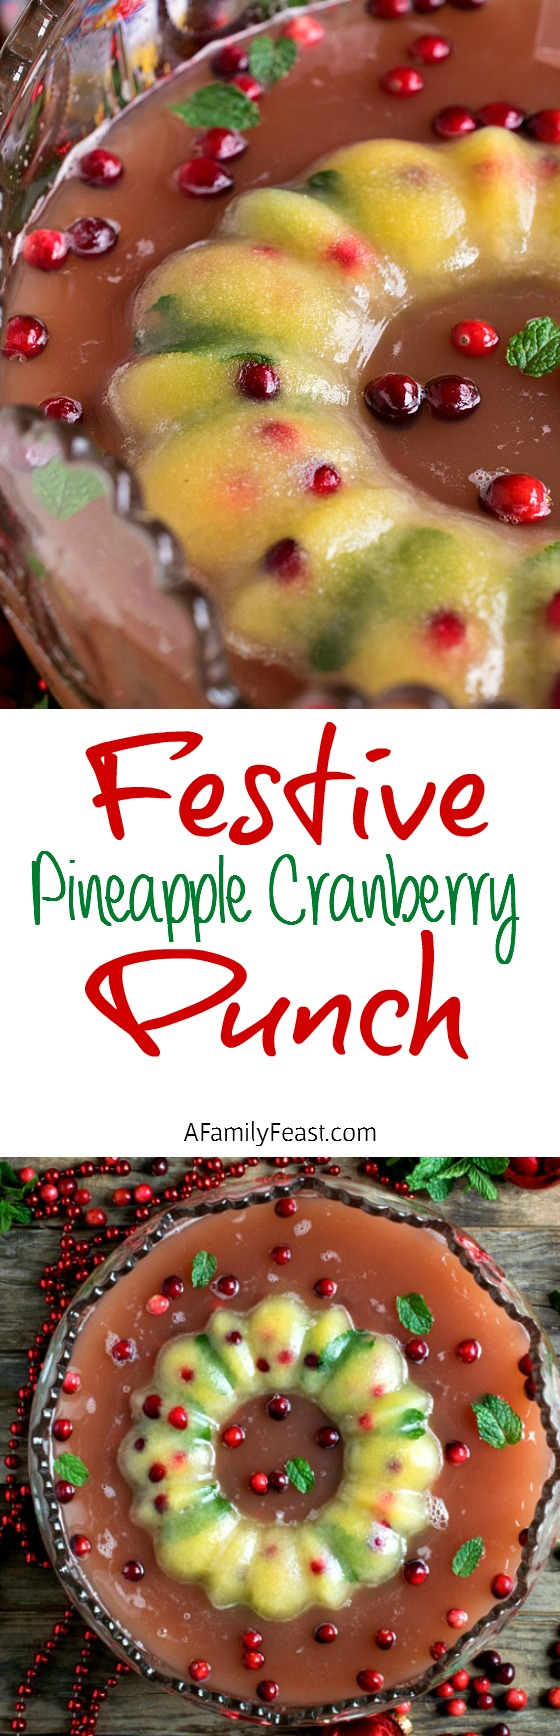 This Festive Pineapple Cranberry Punch is perfect for a holiday party! We also show you how to make a beautiful ice ring to keep your punch icy cold!